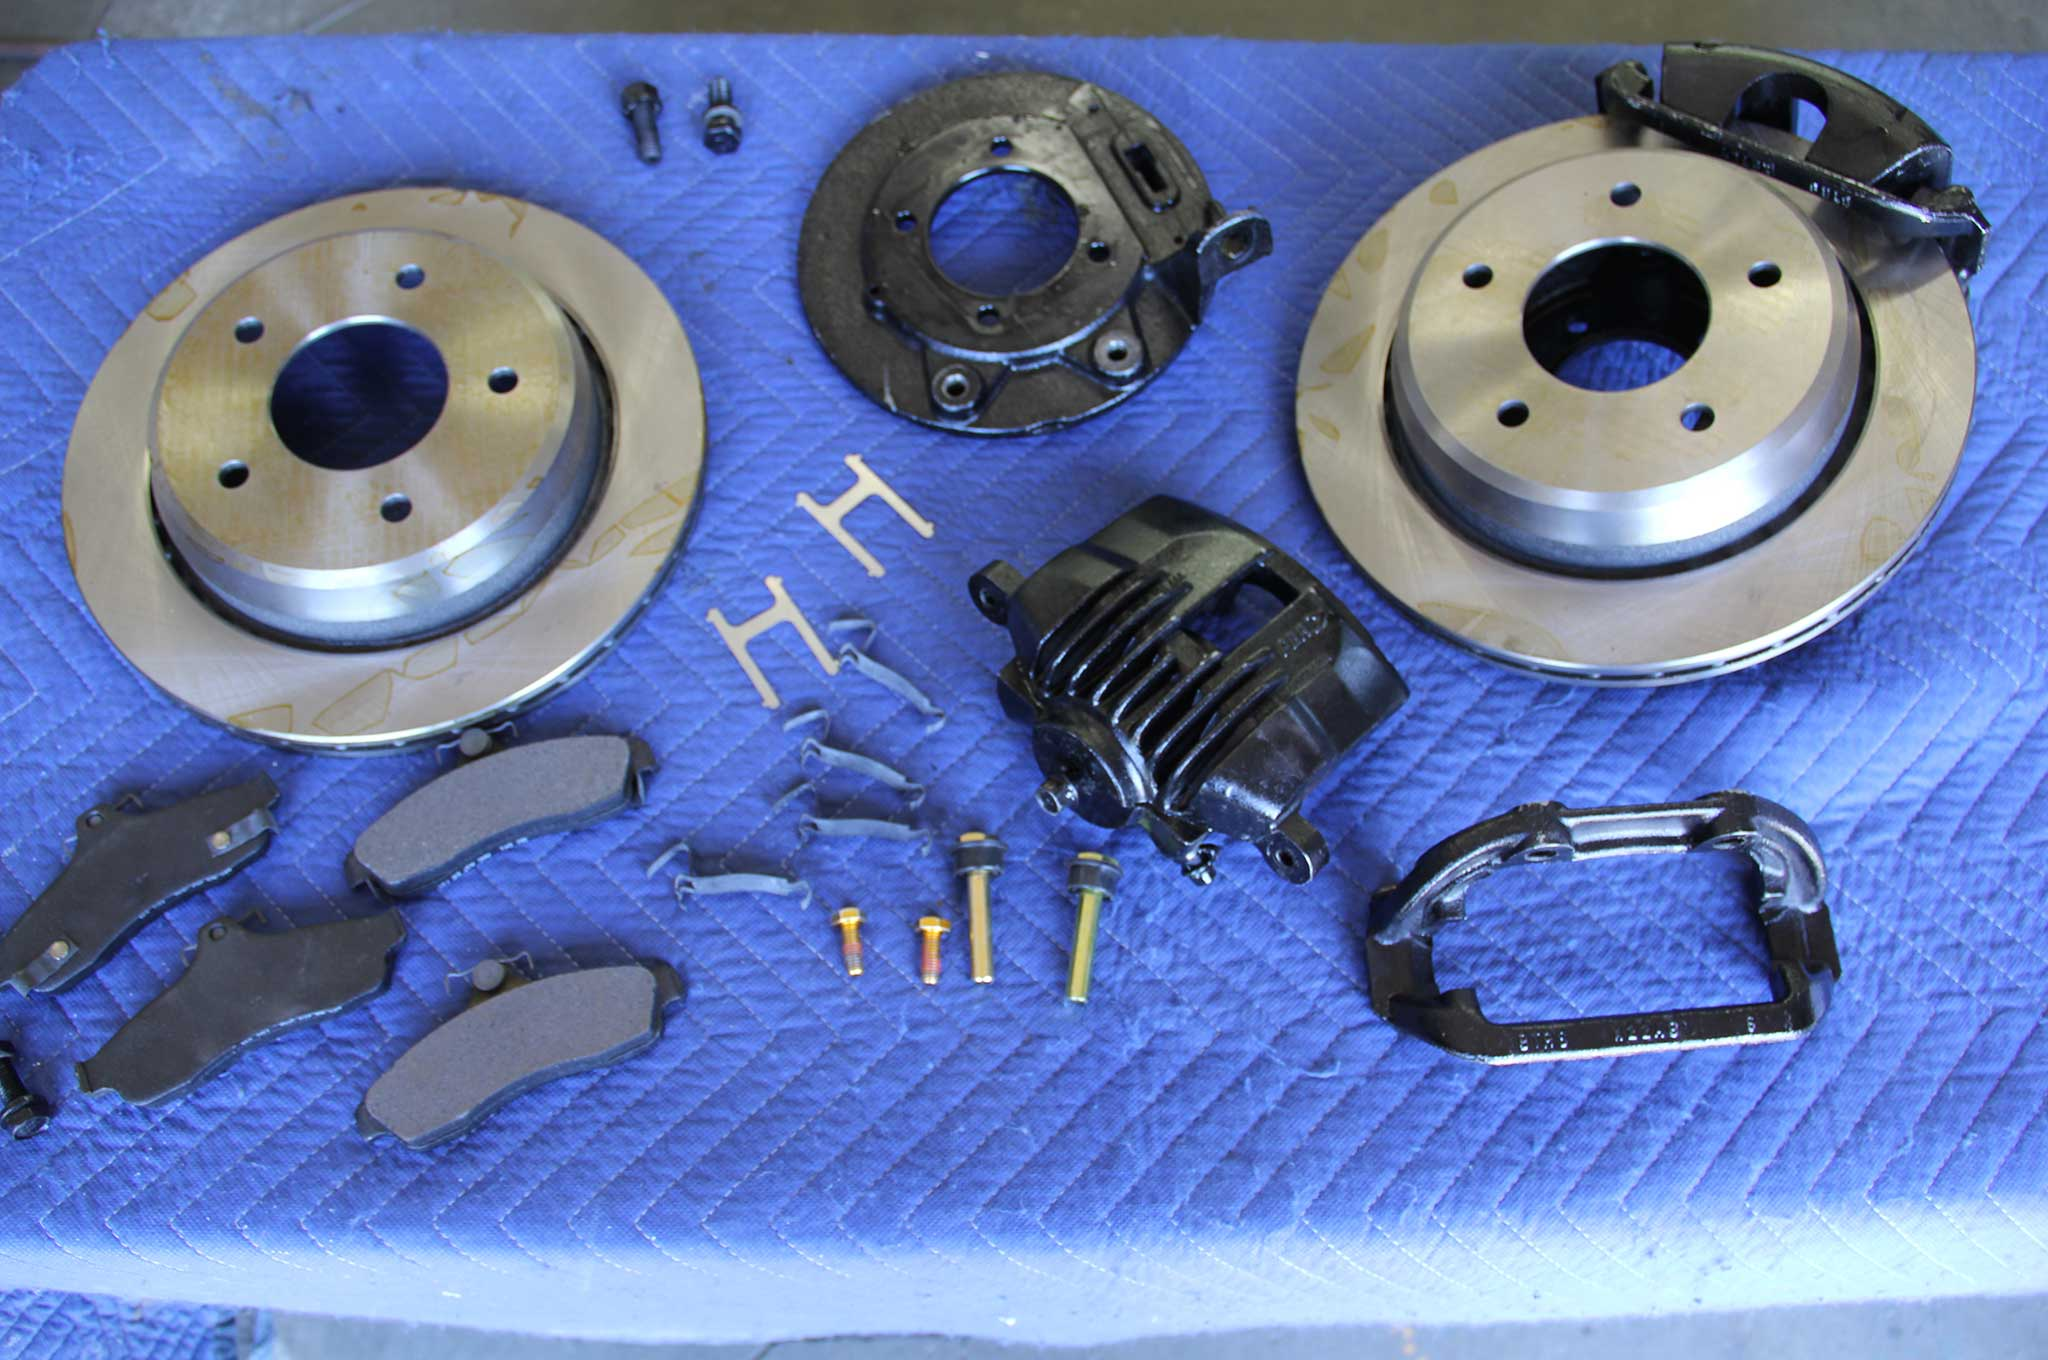 gm-model-drum-to-disc-brake-conversion-1996-ss-impala-rear-disc-brake-assembly-003 Wonderful 1964 Lincoln Continental Disc Brake Conversion Kit Cars Trend